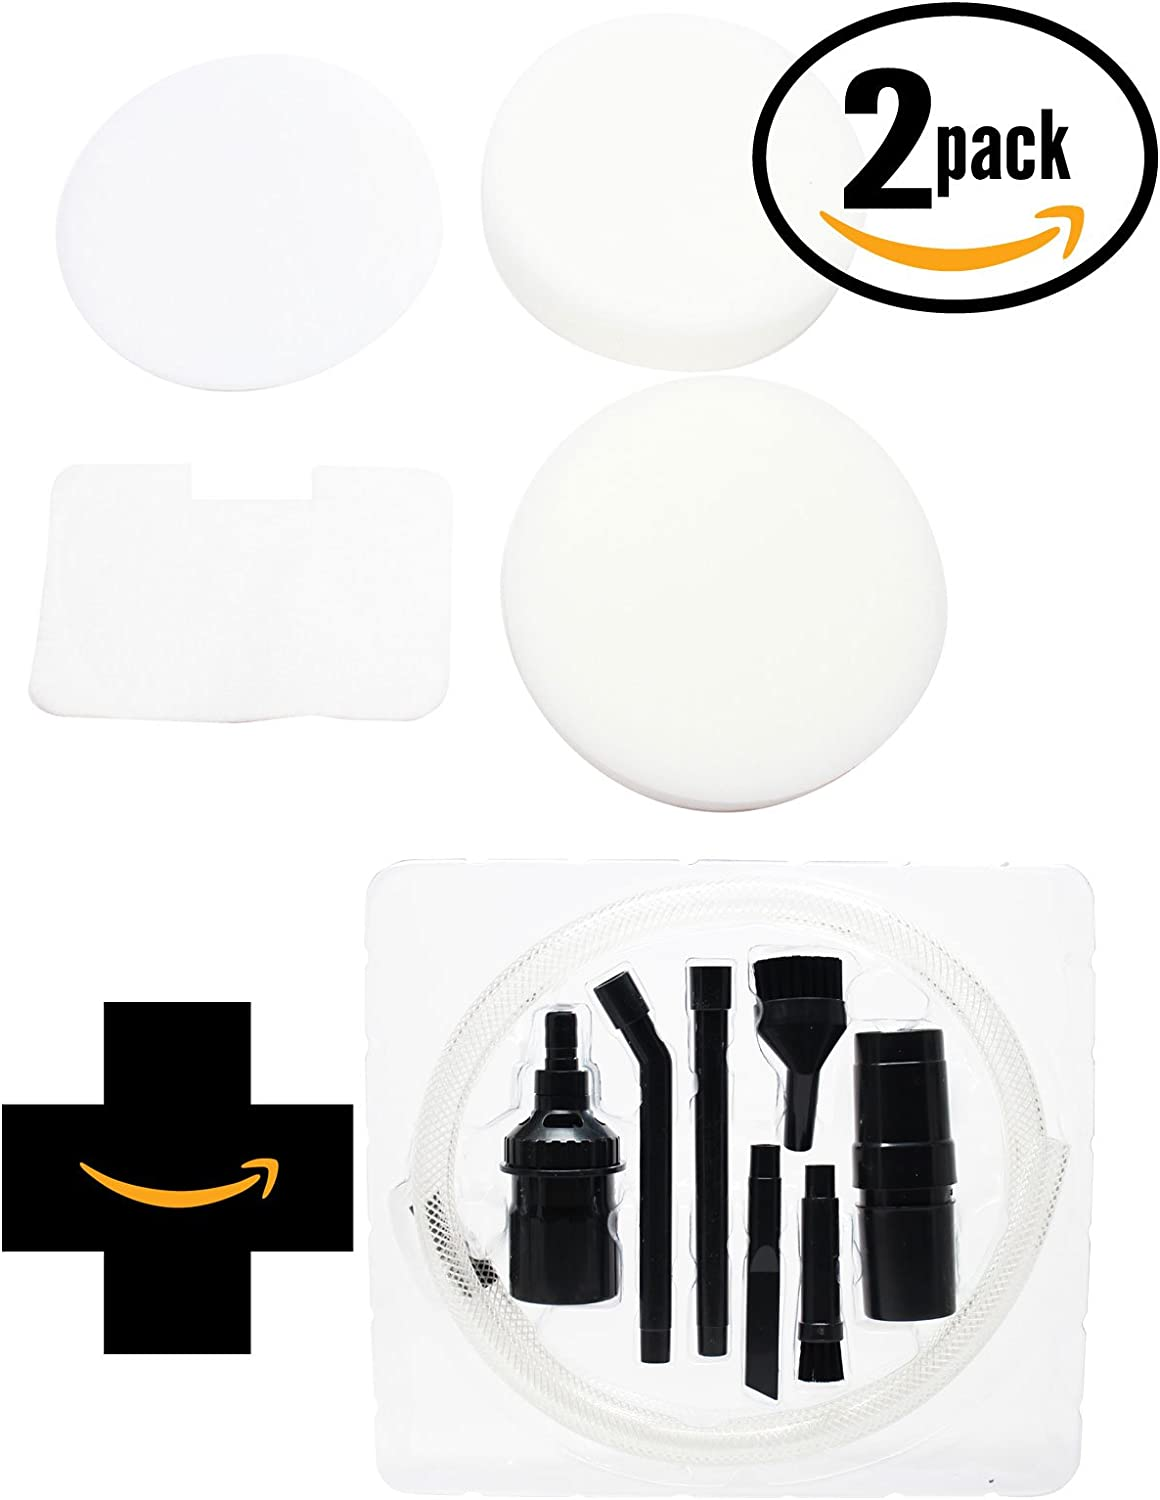 2-Pack Replacement NV22L 4-Piece Foam and Felt Filter XF22 with 1 Micro Vacuum Attachment Kit for Shark - Compatible with Shark Navigator NV22L, Shark NV22L, Shark NV22, Shark Navigator NV22, Shark NV26, Shark Navigator Swivel NV26, Shark UV410, Shark XF22, Shark UV400, Shark Navigator Swivel Deluxe UV410, Shark NV36A, Shark NV22W, Shark Navigator NV22T, Shark Navigator NV22W